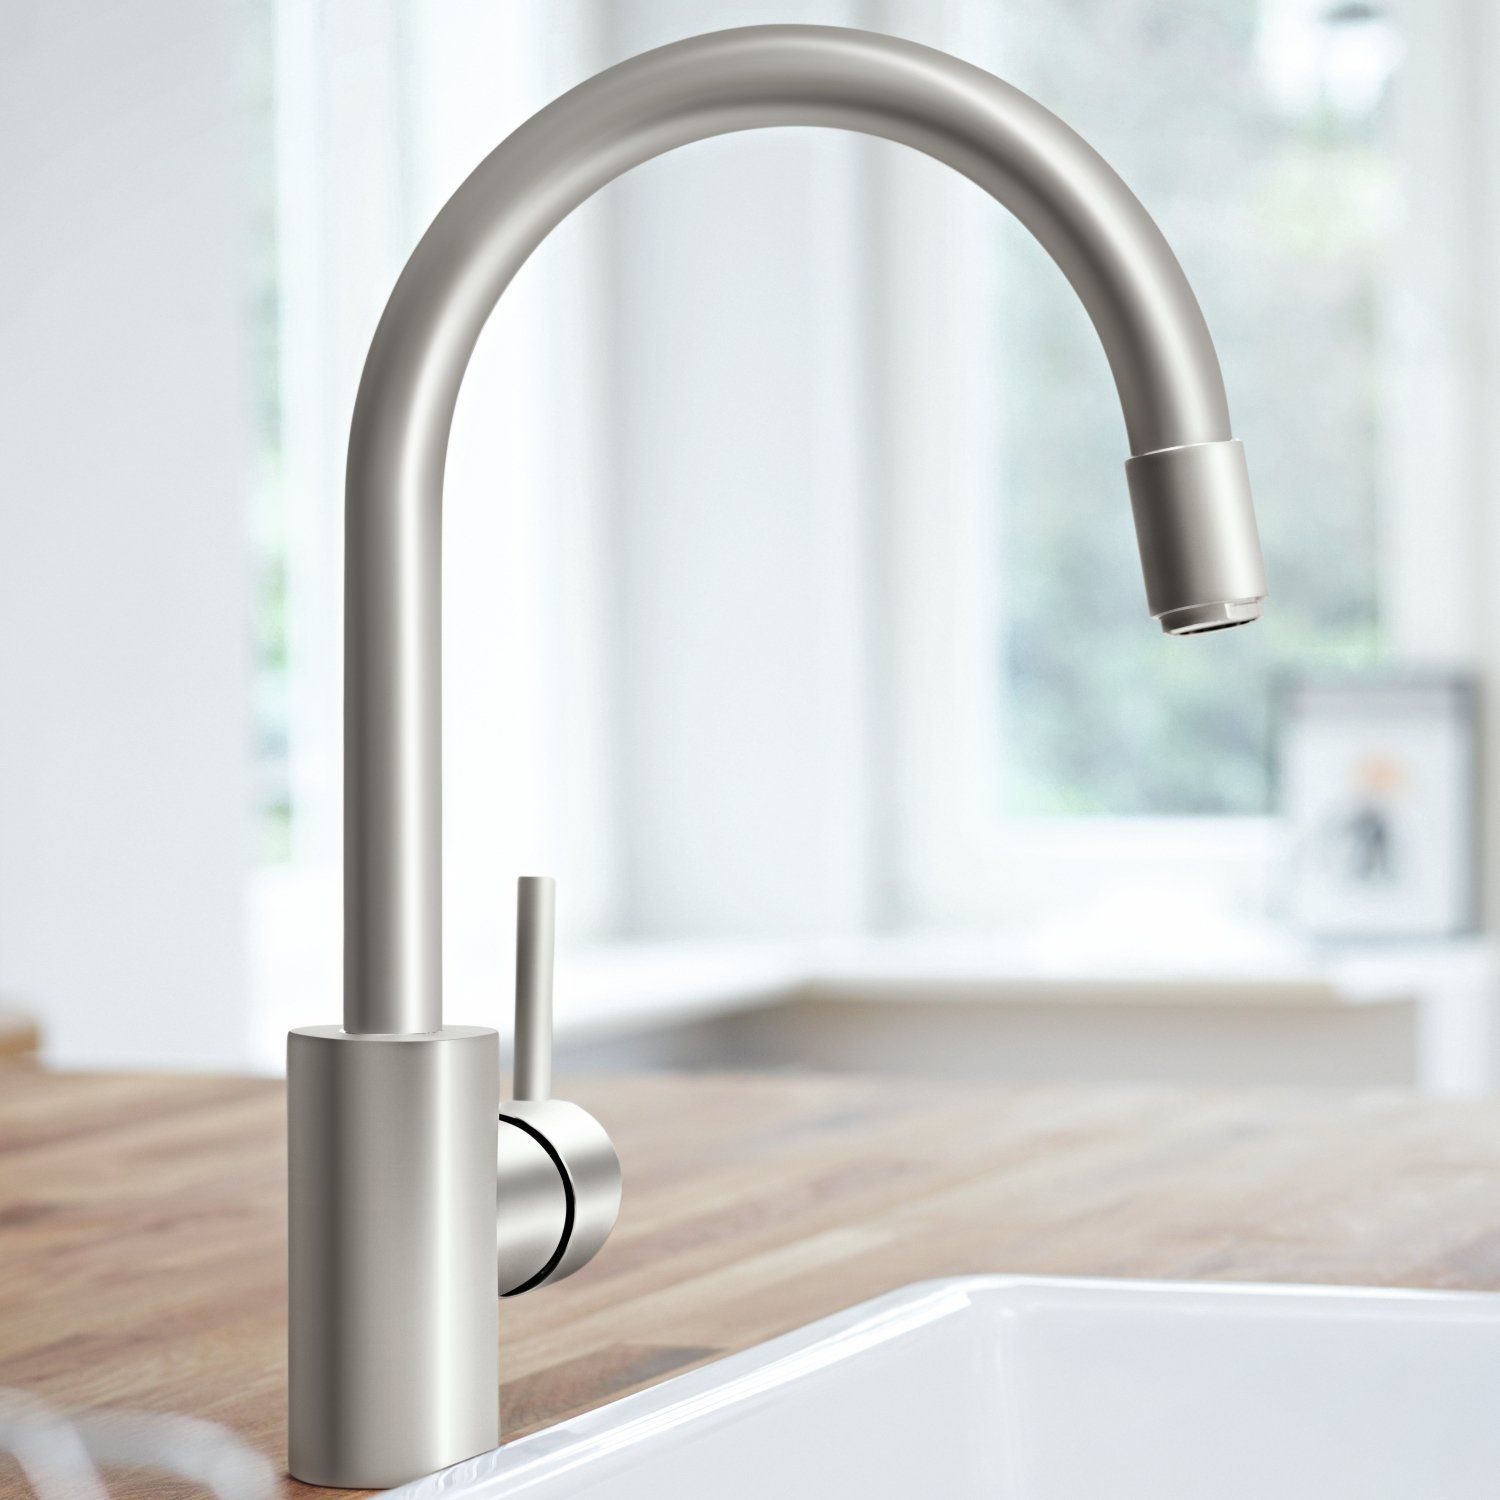 Grohe Concetto Kitchen Tap High Spout With Pull Down Spray Head